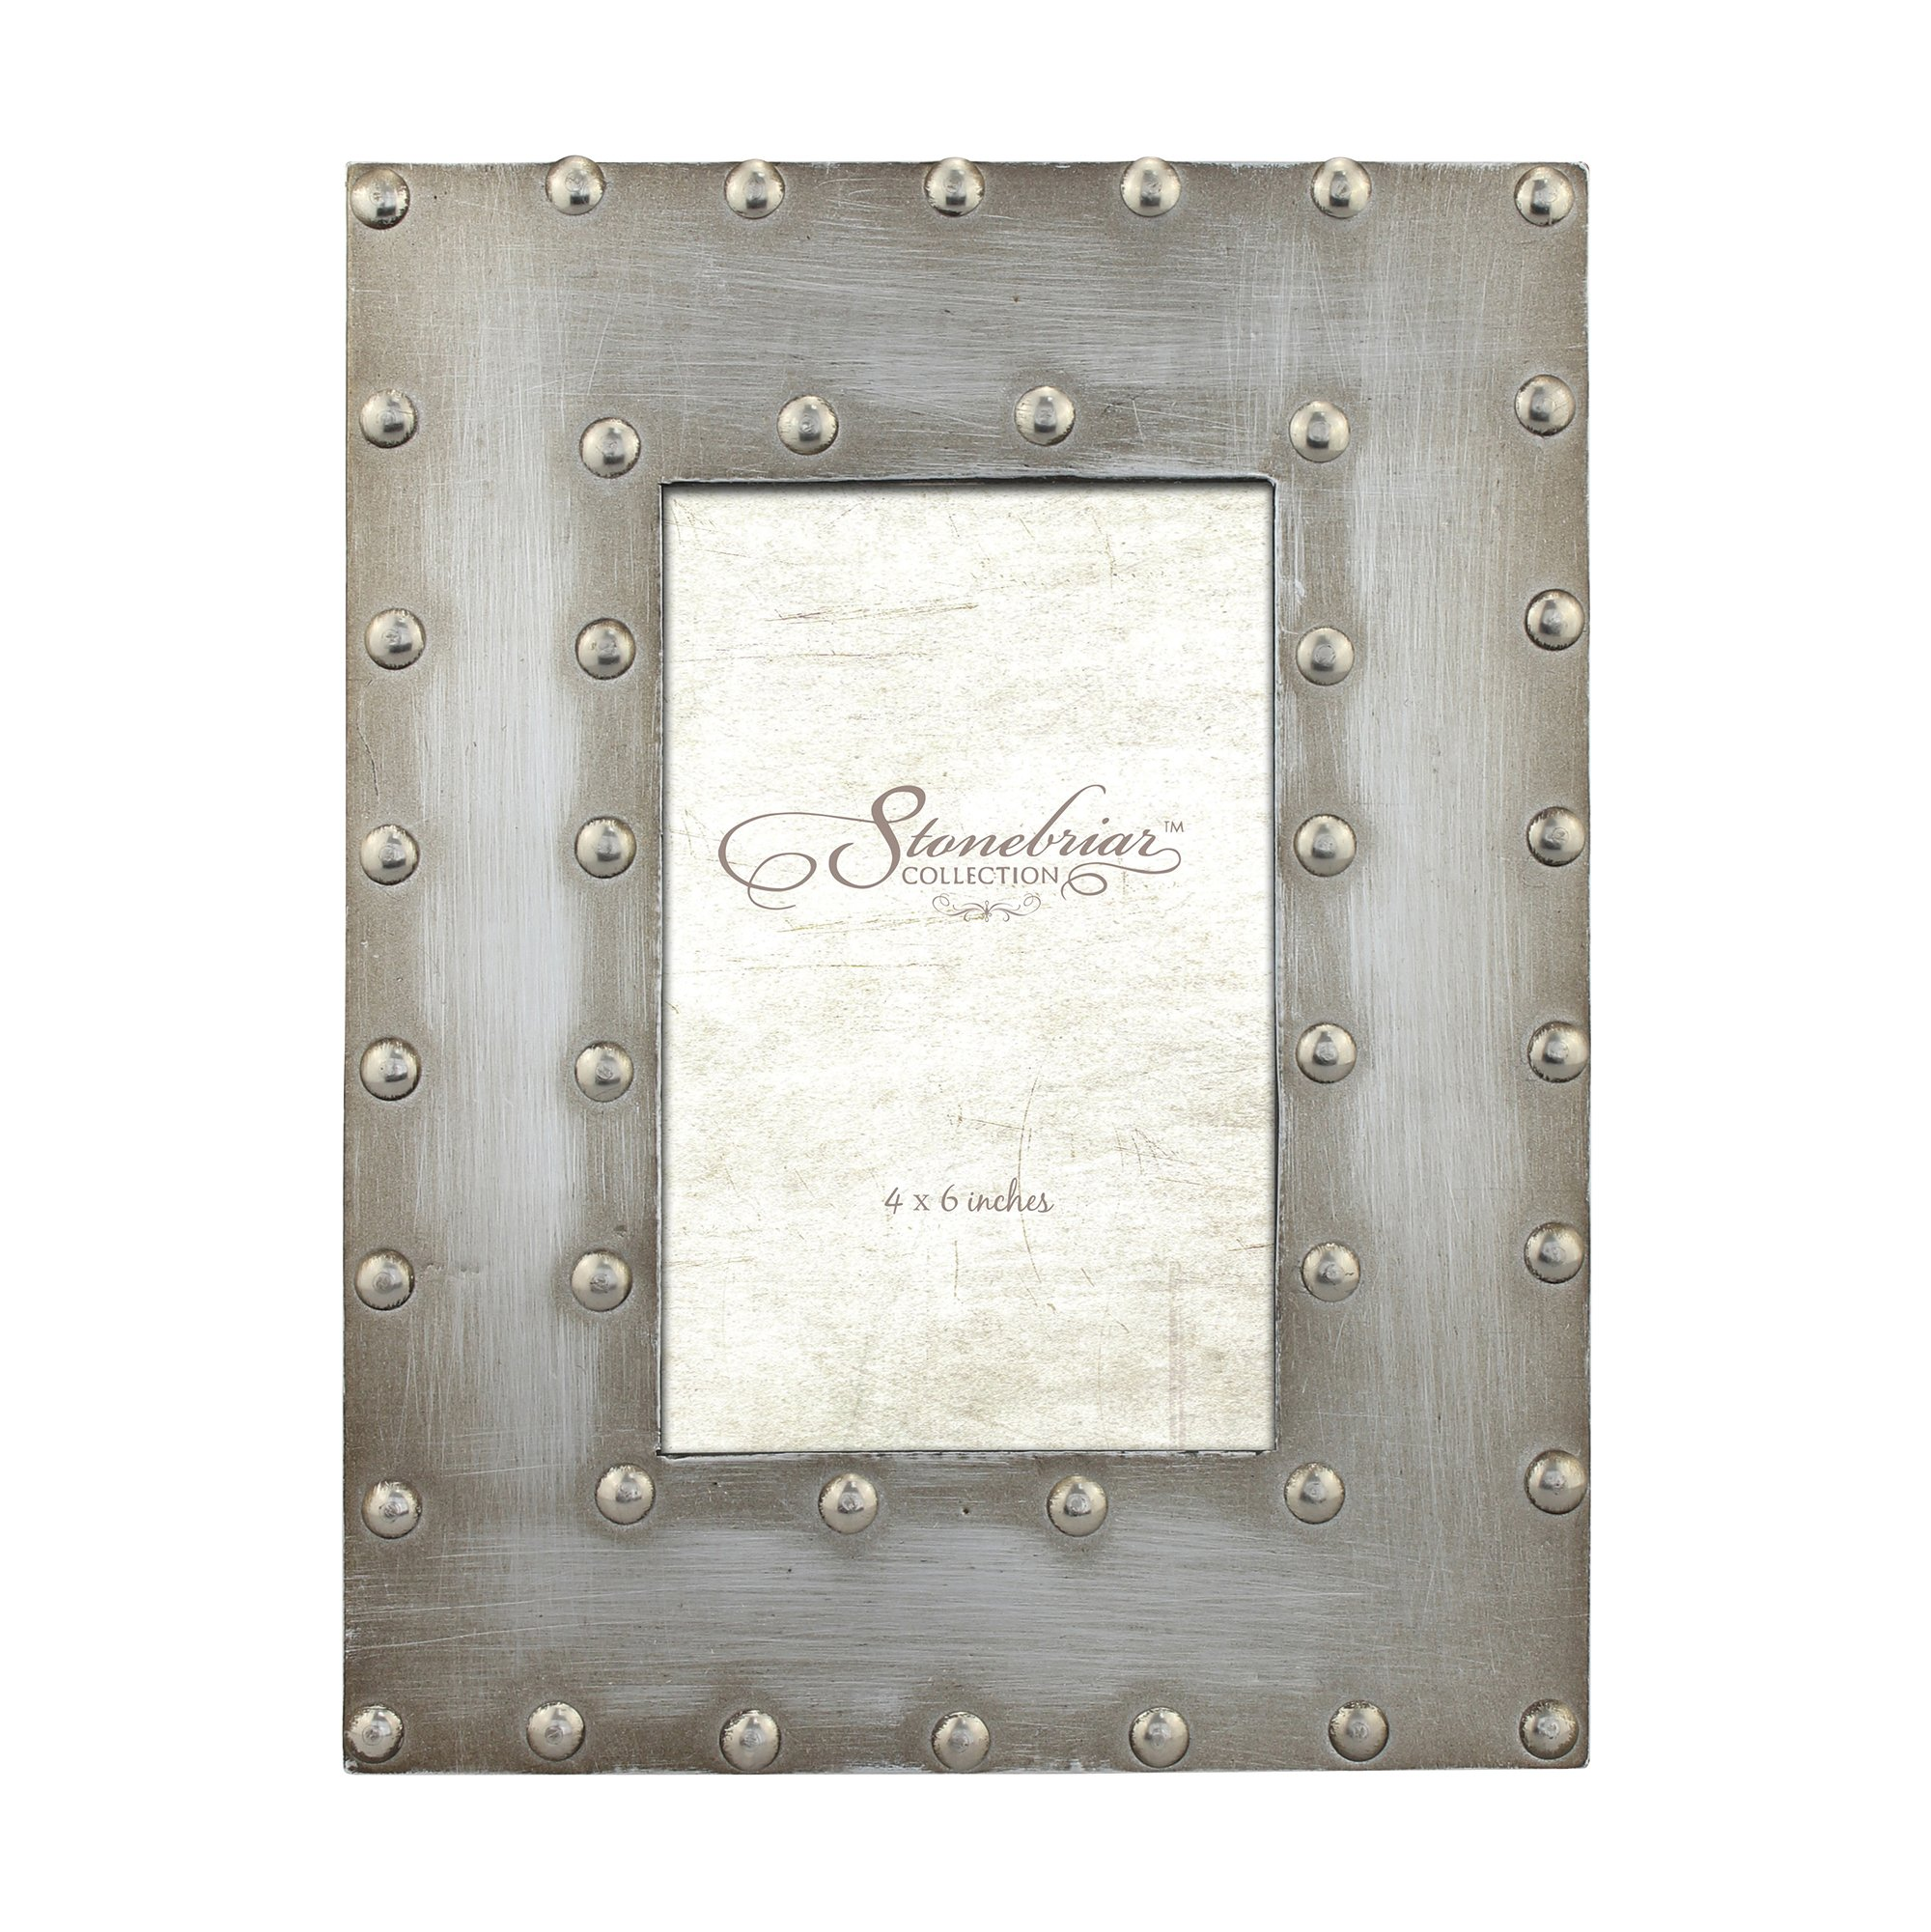 Stonebriar Industrial Distressed Metal Photo Frame with Rivet Detail, Decorative Picture Frame for Table Top or Wall Hanging Display, 4x6 by Stonebriar